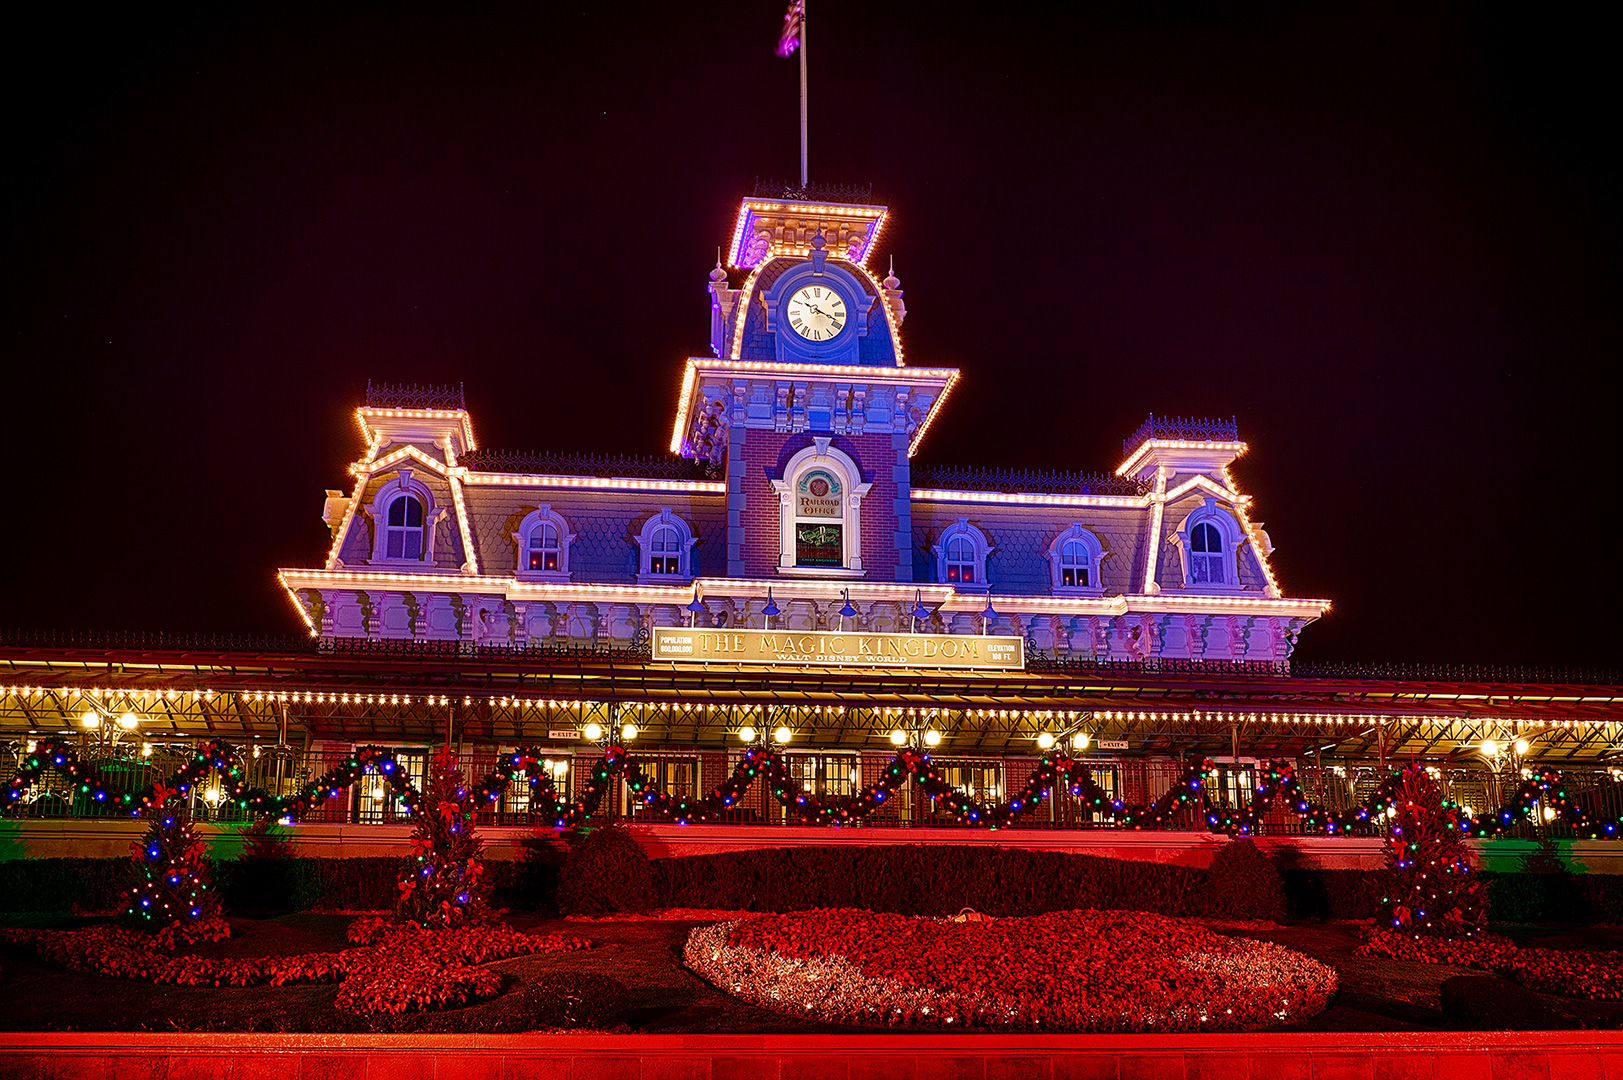 Disney Photography, Disney World Photography, Disneyland Photography, Disney Photos, Disney Pictures, Walt Disney World, The Magic Kingdom, Walt Disney, Mickey Mouse, Orlando, Florida, Theme Park,  Main Street Train Station, Christmas